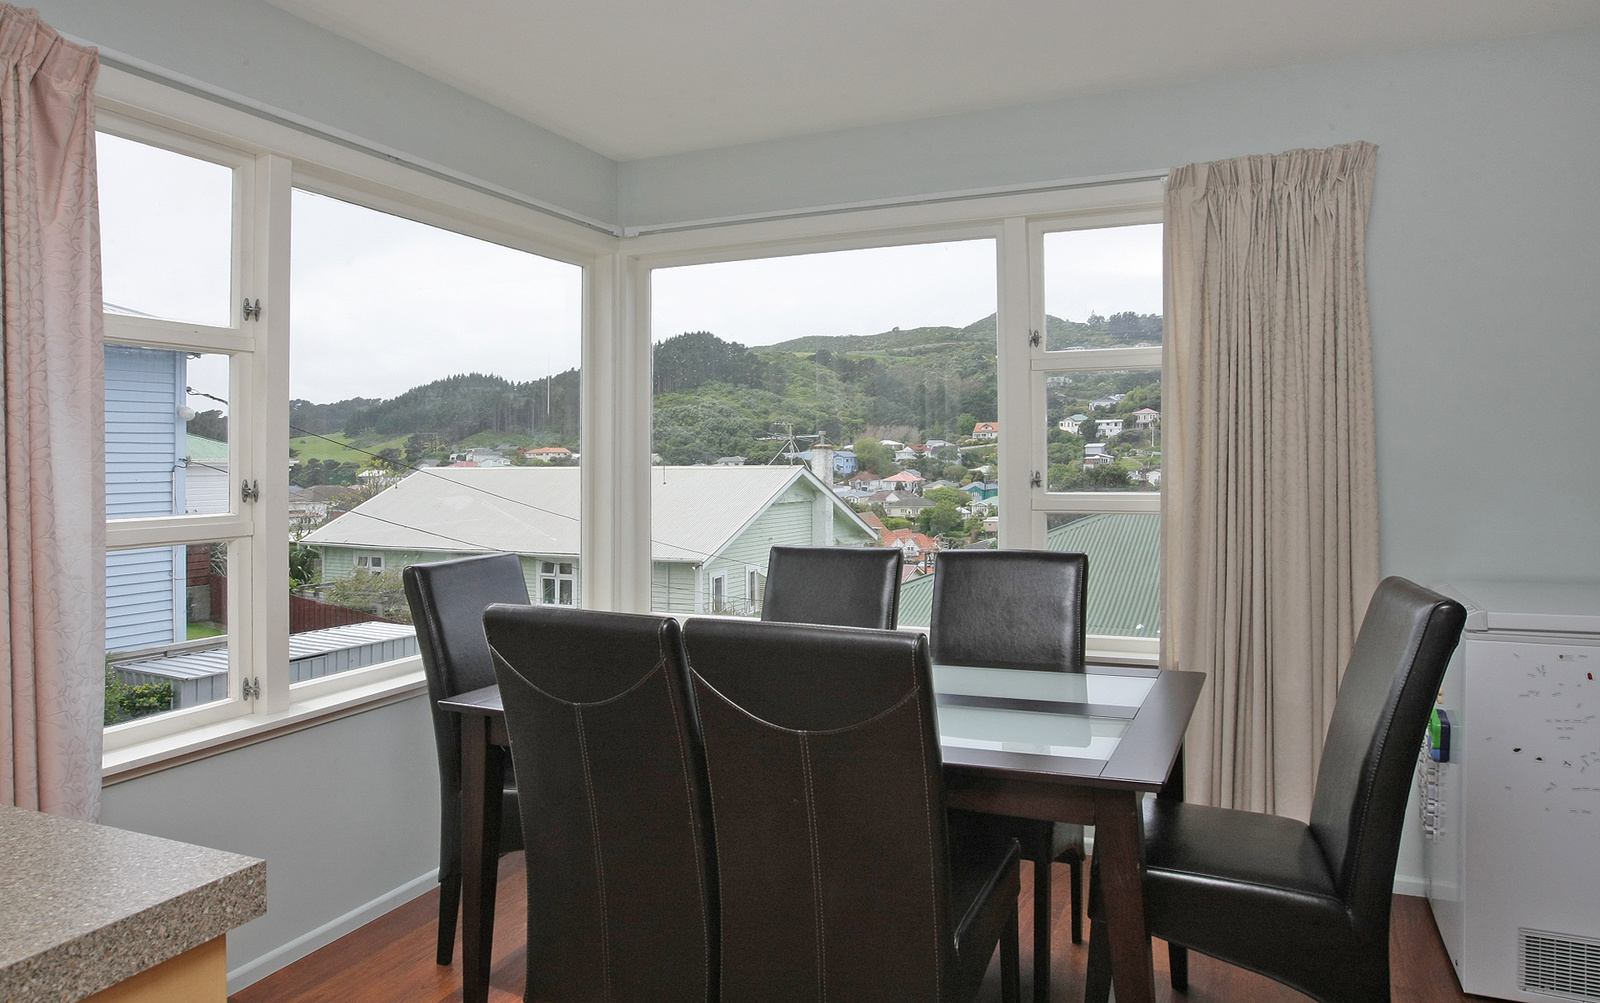 Island Bay Four-Bedroom Family Home – 64 Eden Street, Island Bay